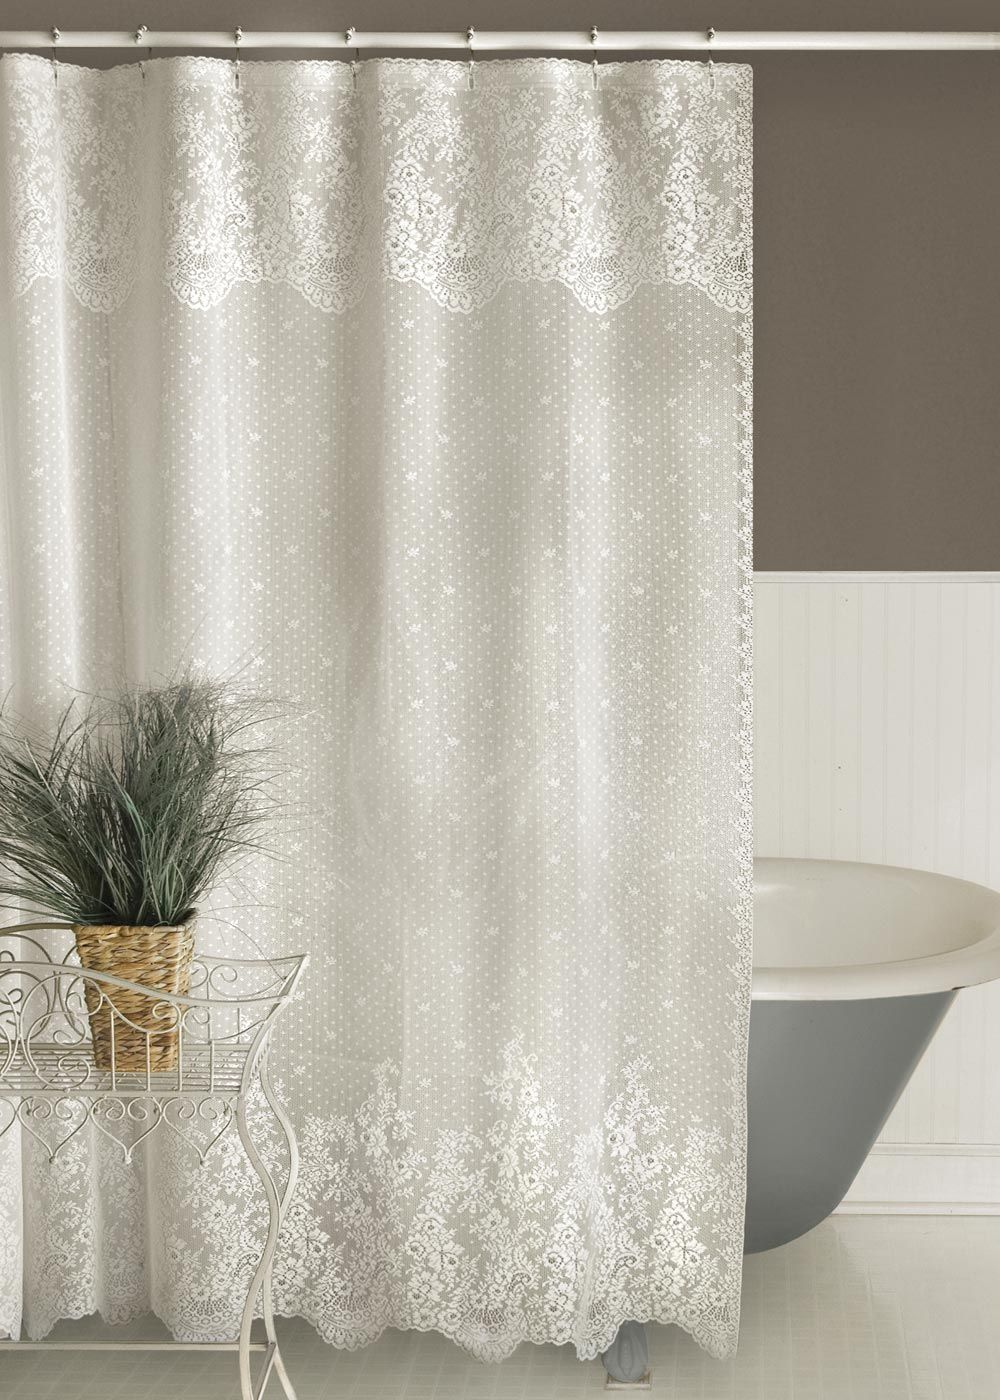 Floret Shower Curtain What A Beautiful Shower Curtain For The - Country shower curtains for the bathroom for bathroom decor ideas